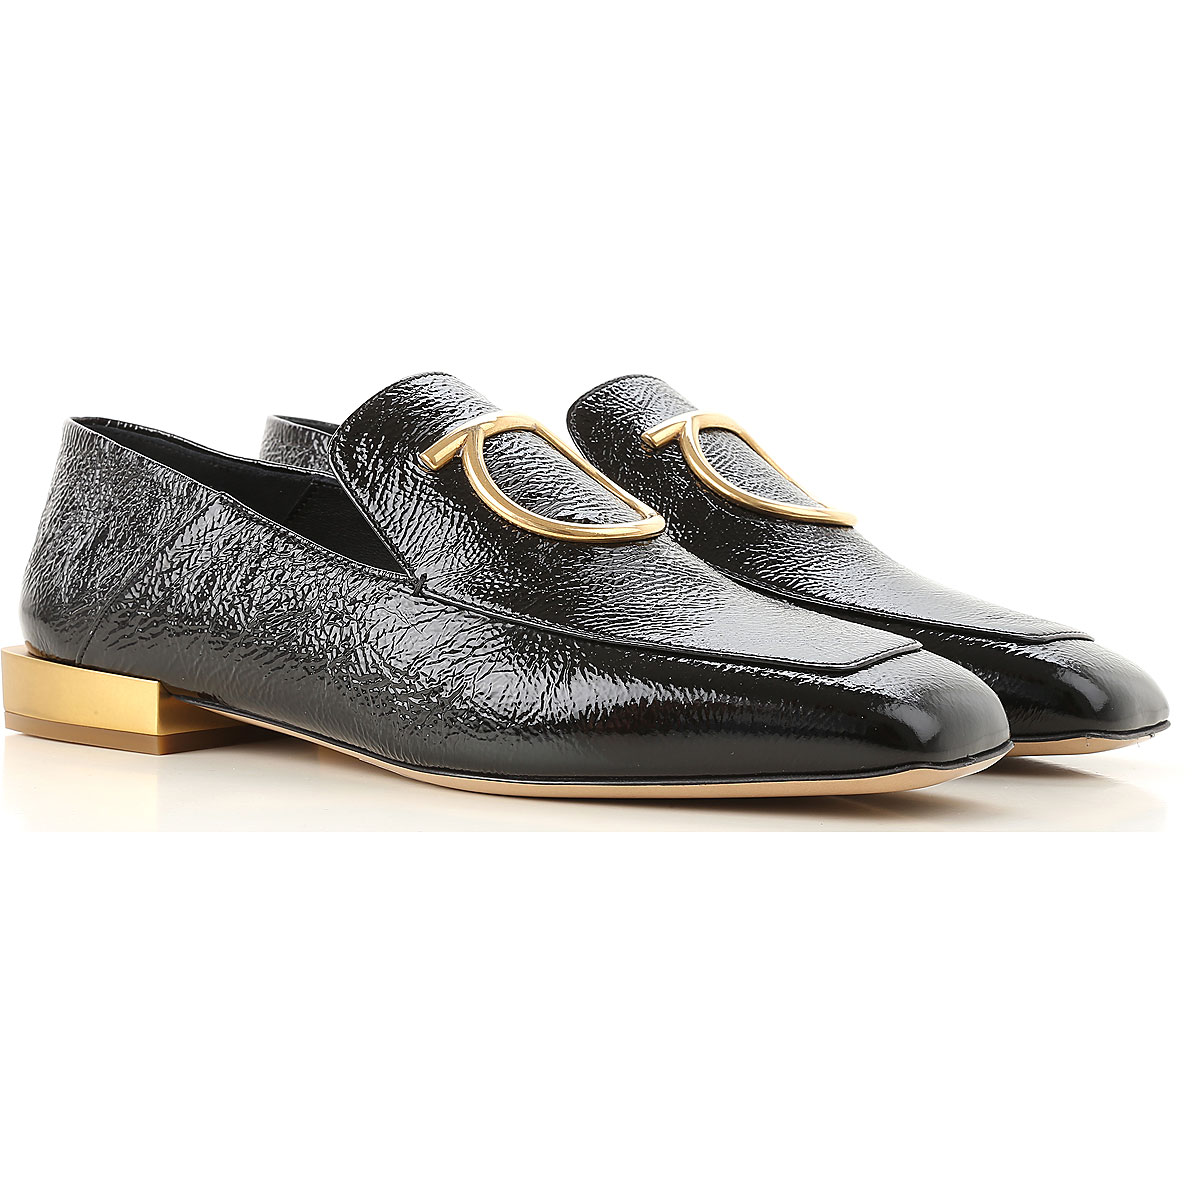 c44b01cc6a21 Salvatore Ferragamo. Shoes for Women